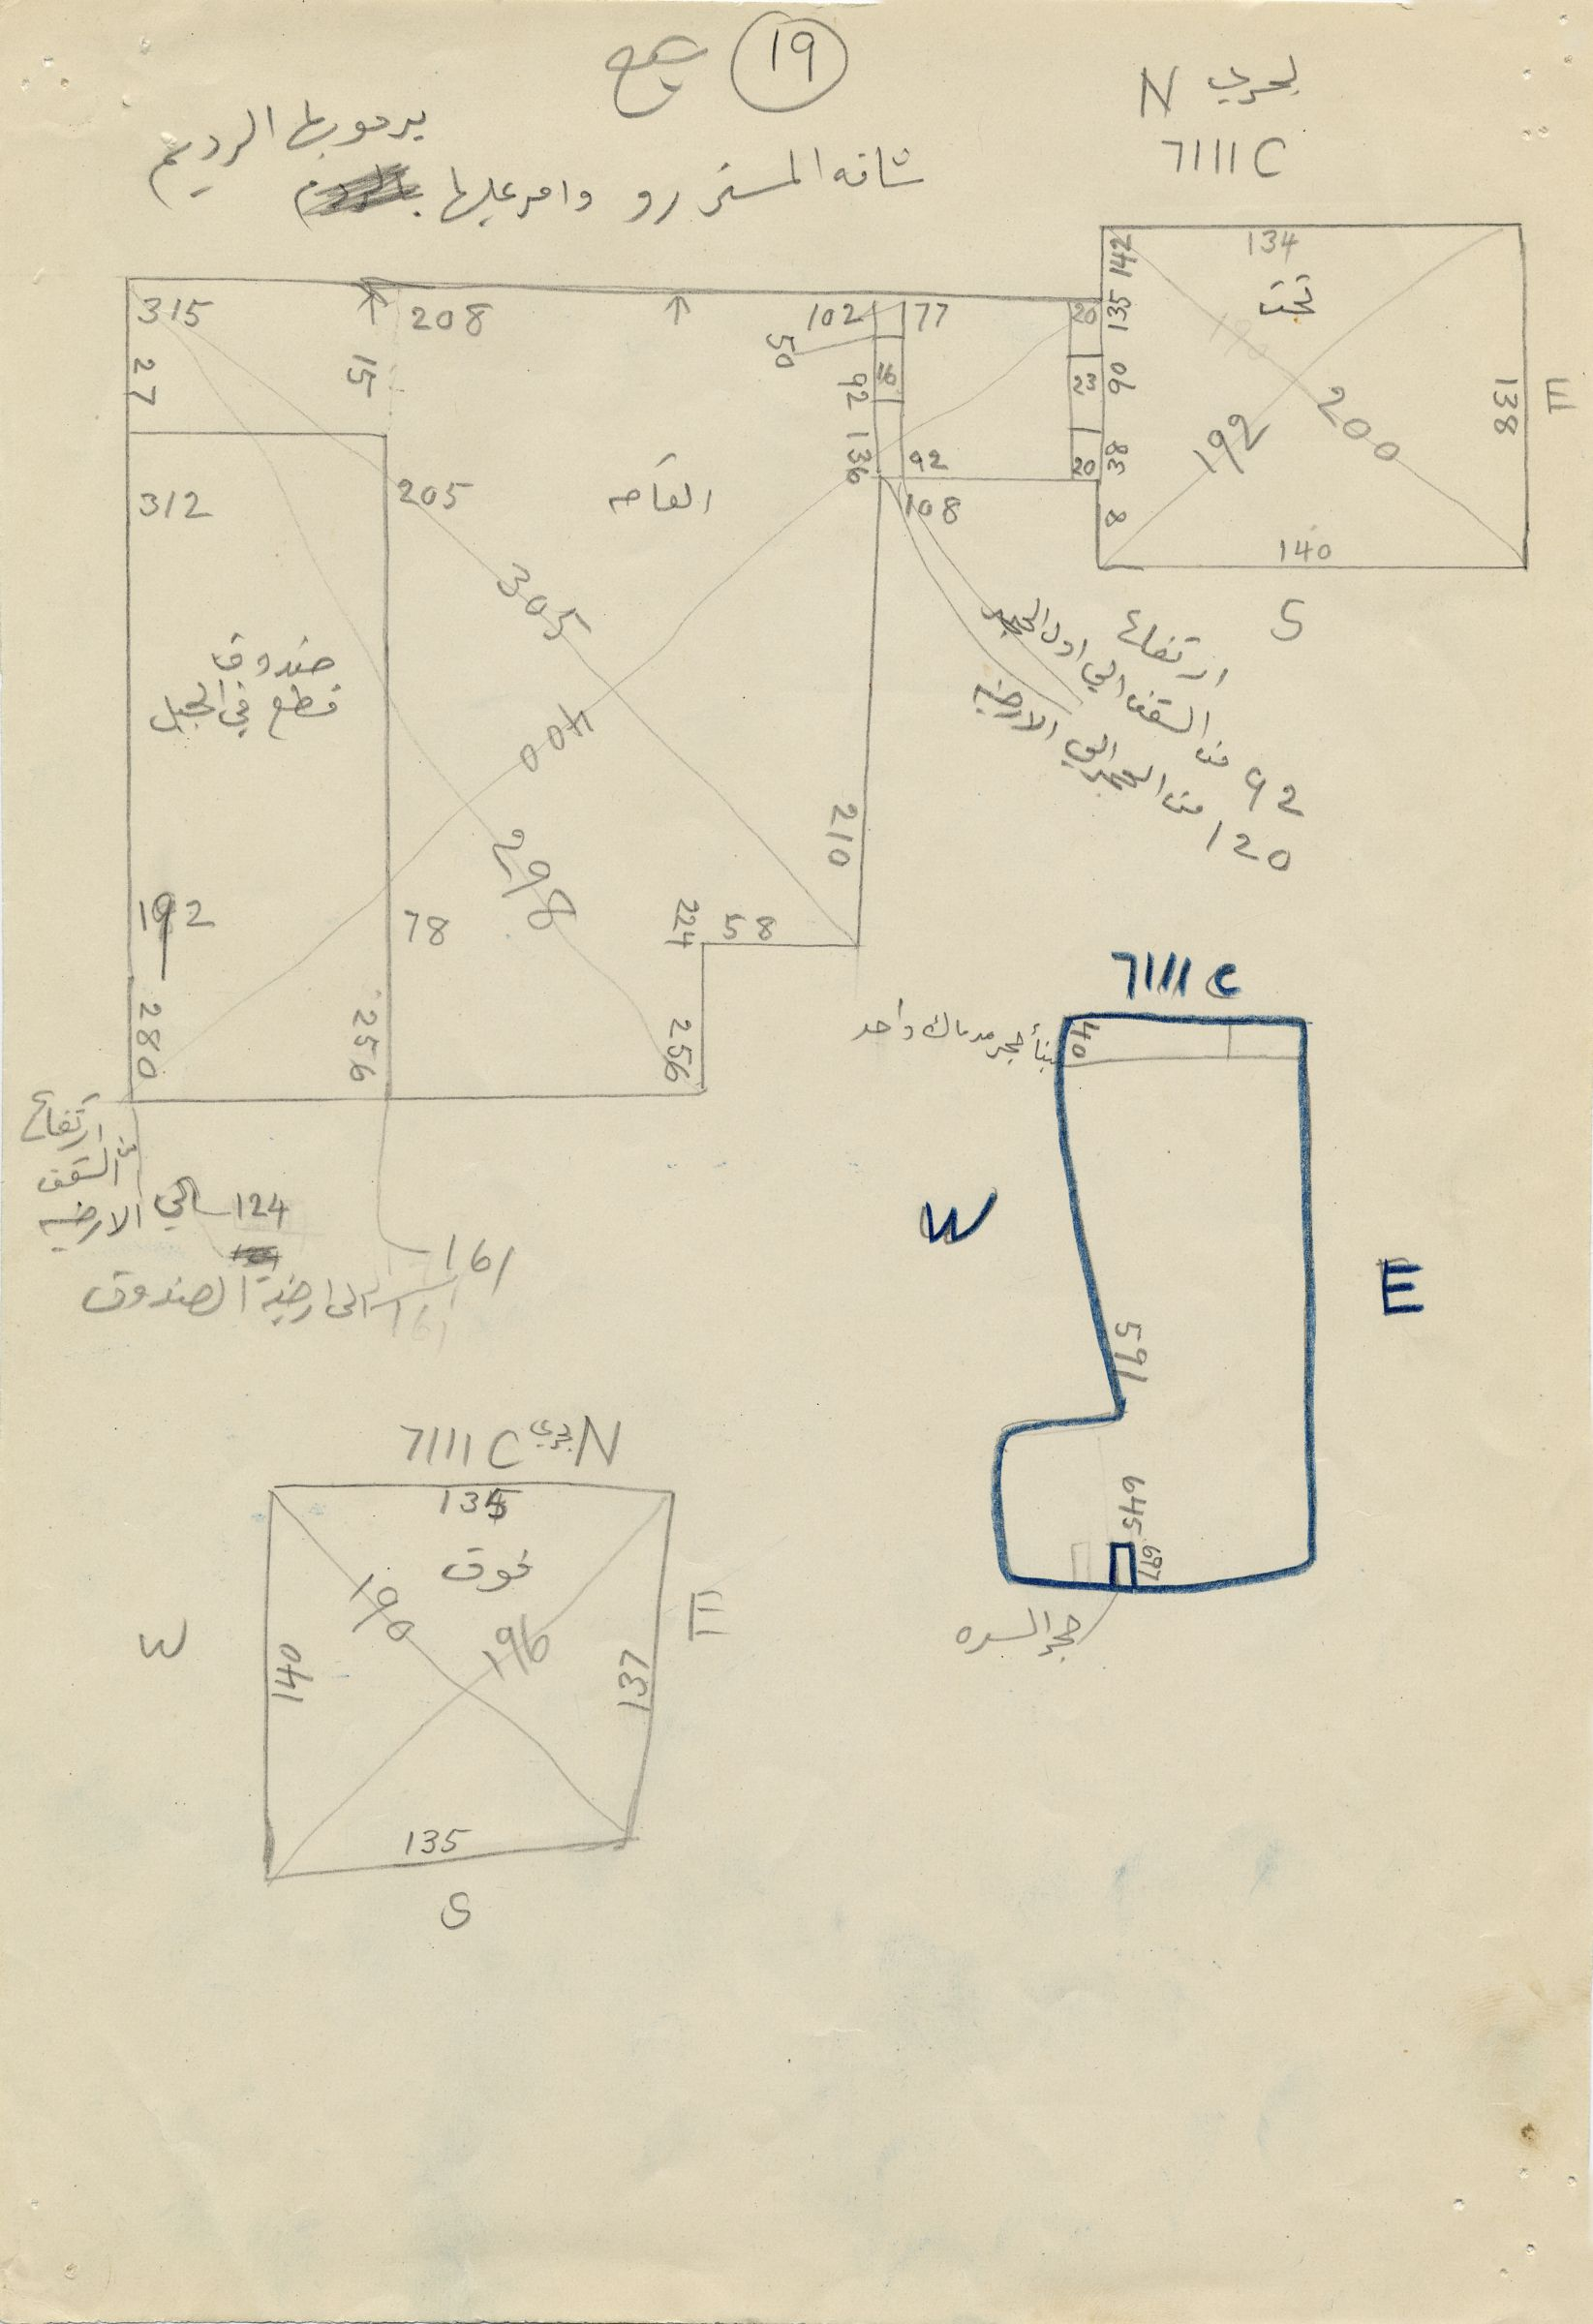 Maps and plans: G 7111, Shaft C